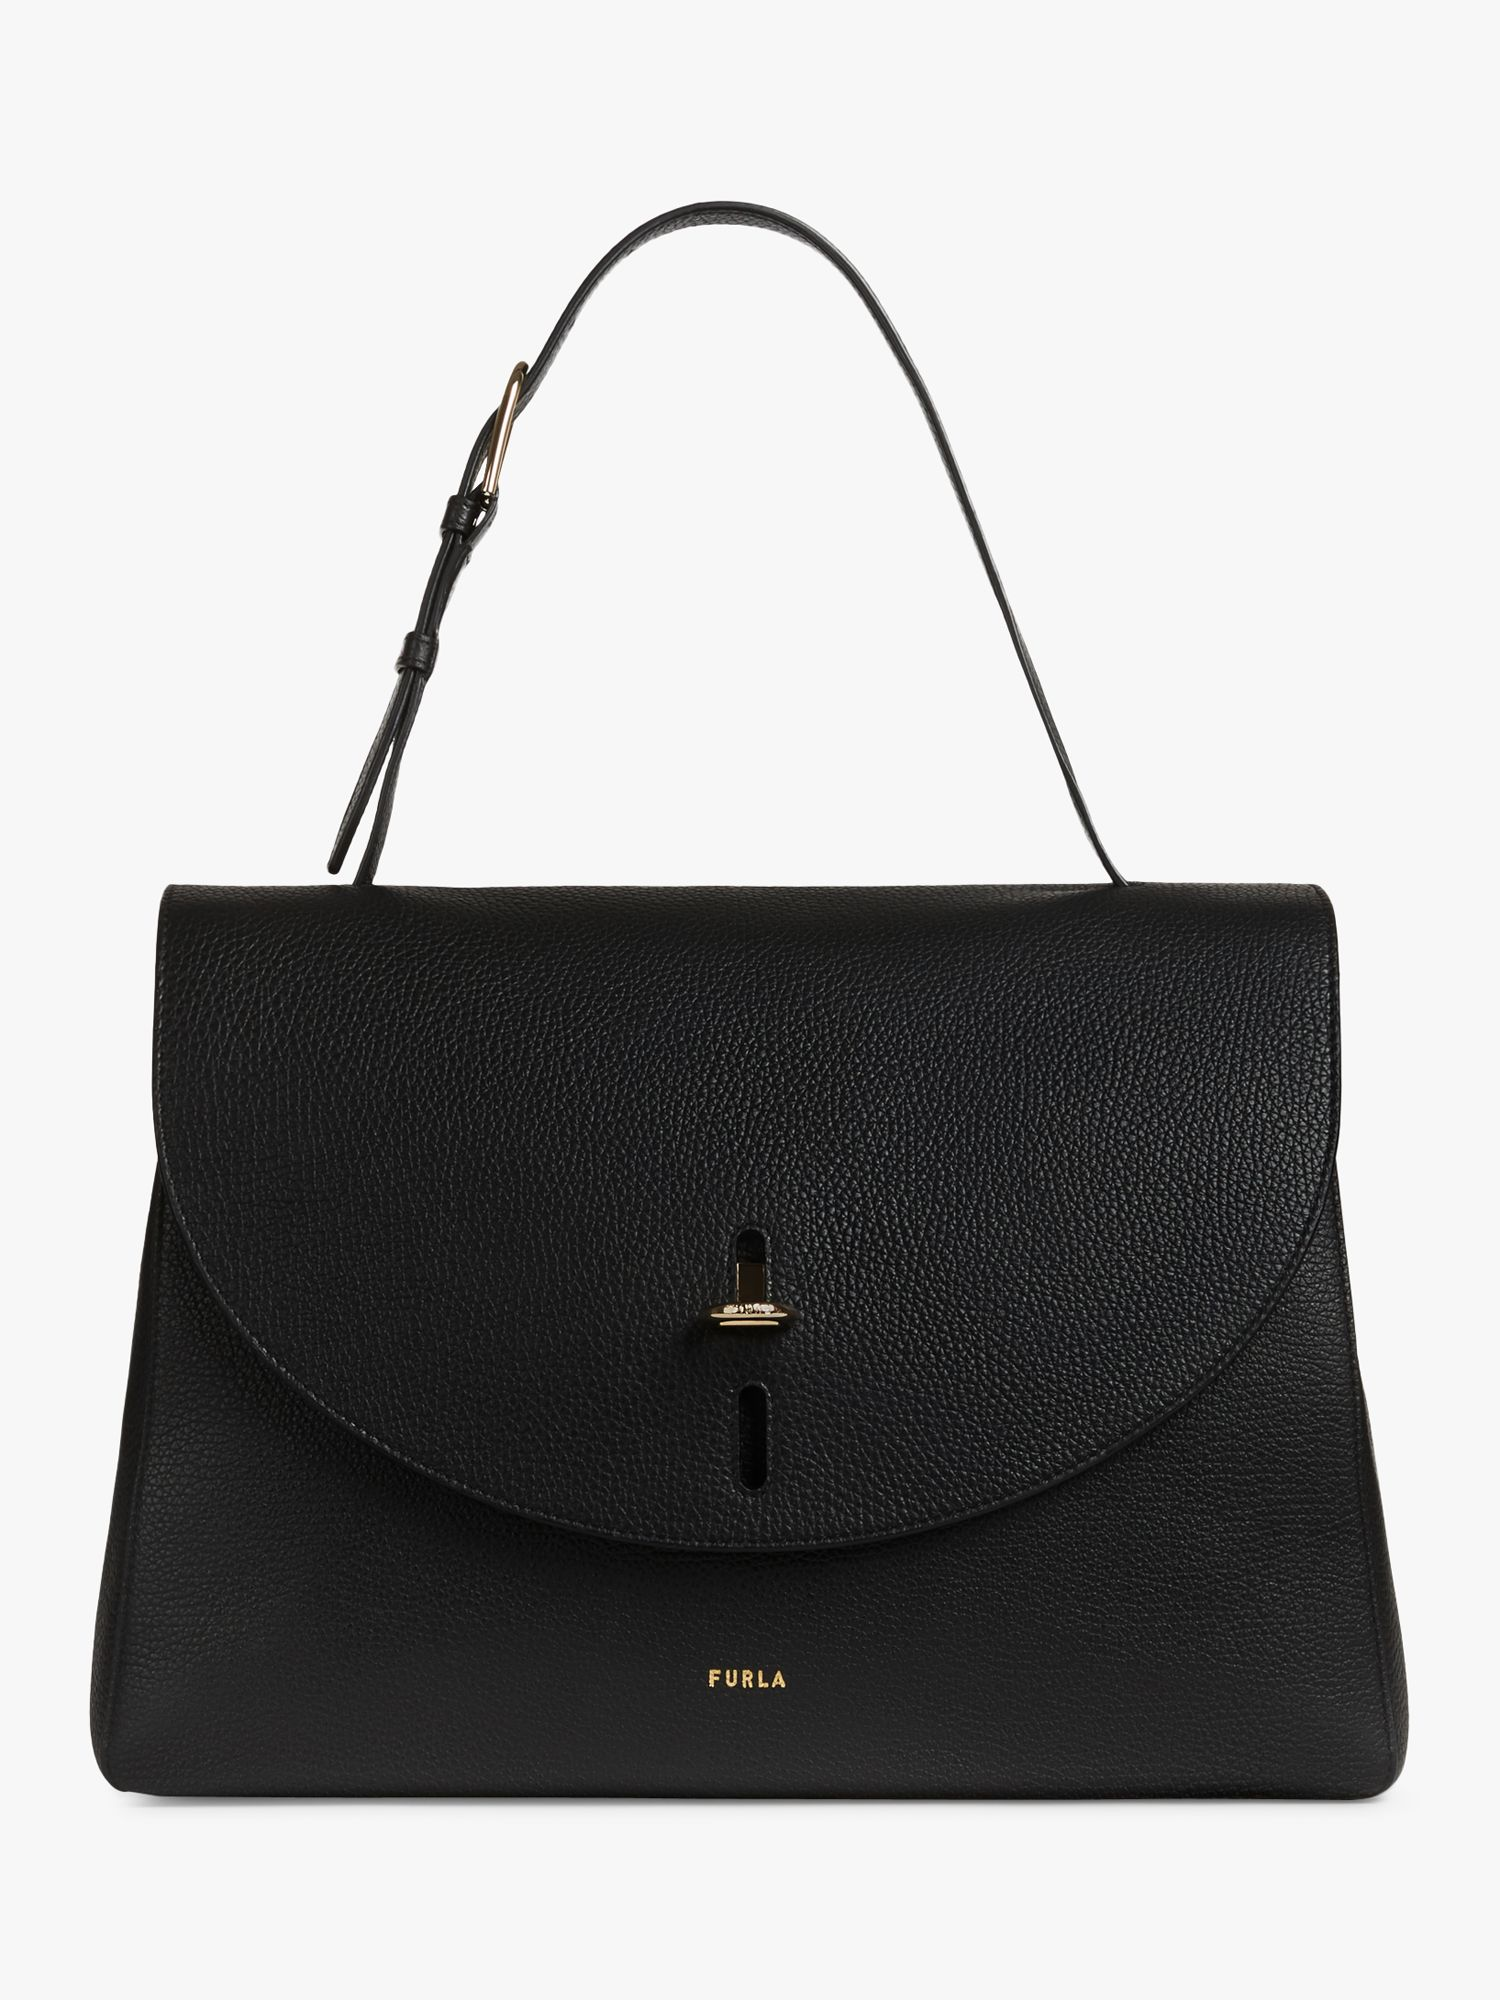 Furla Furla Net Top Handle Large Leather Shoulder Bag, Nero